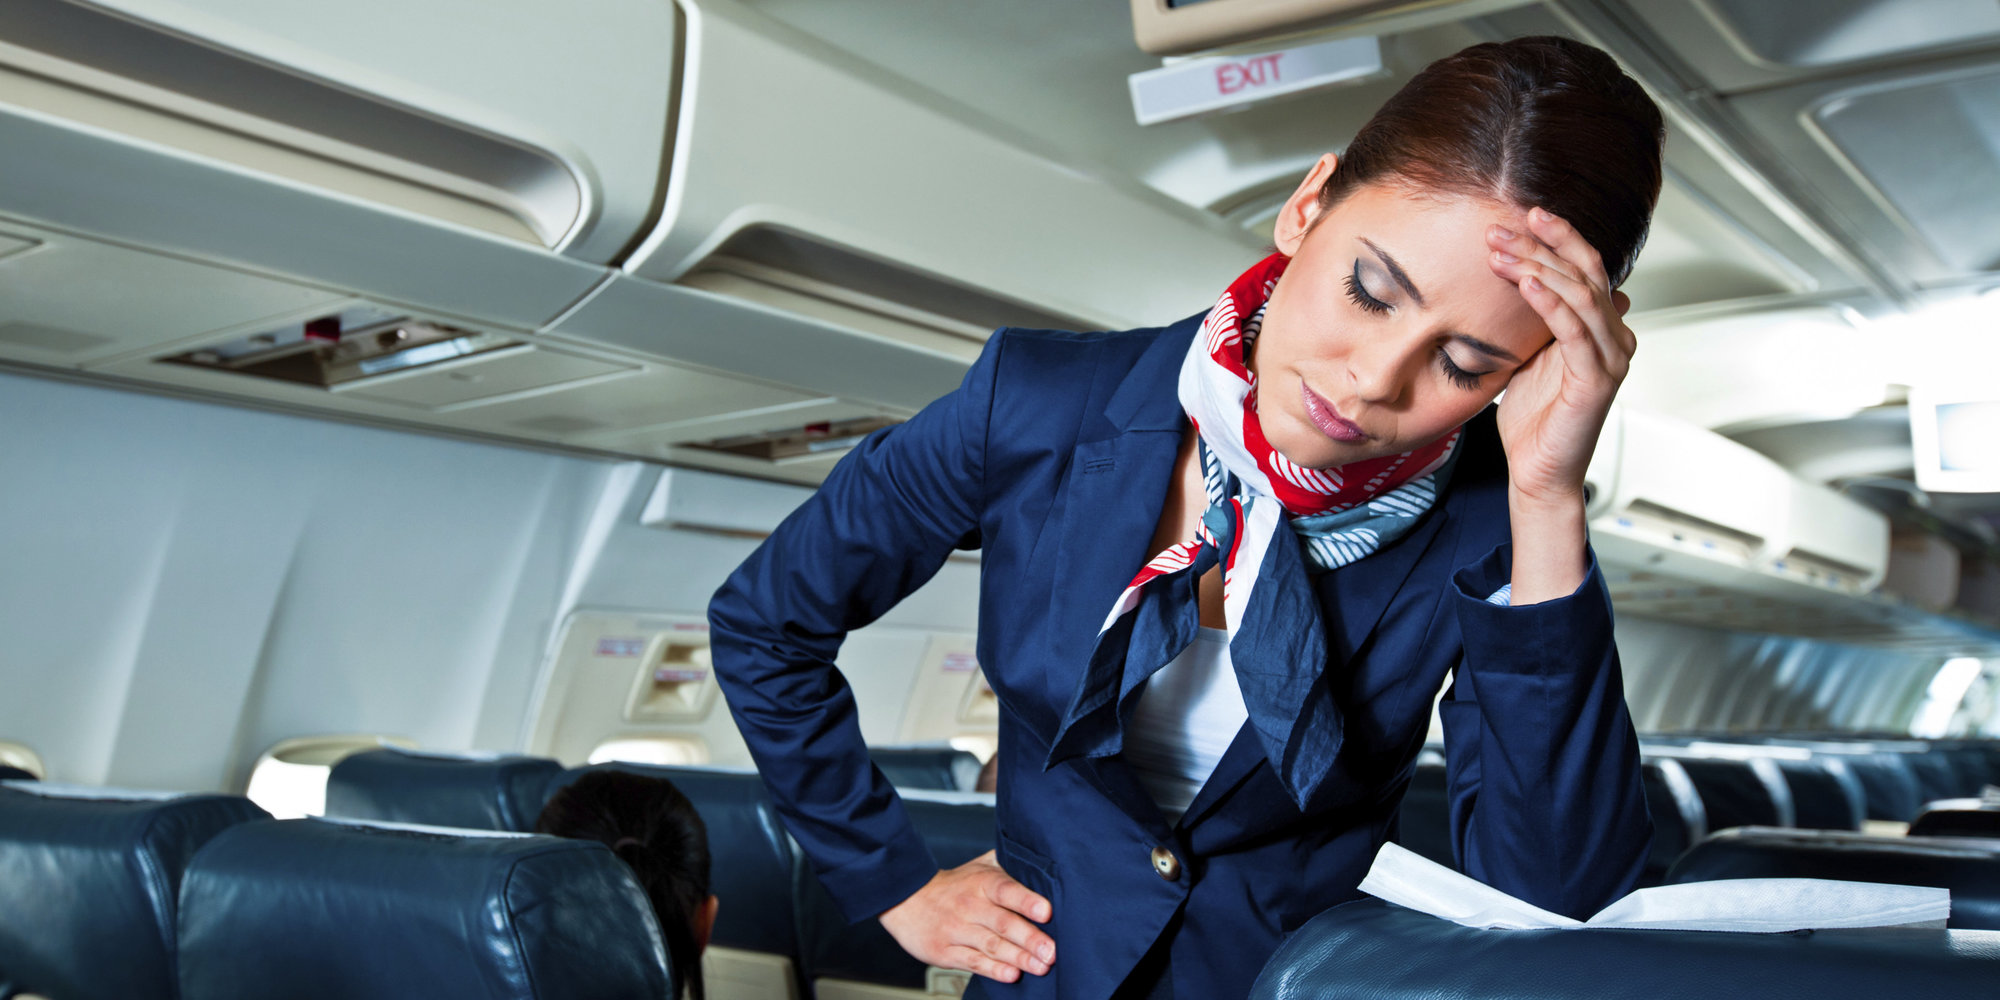 Eight passenger types that flight attendants dislike